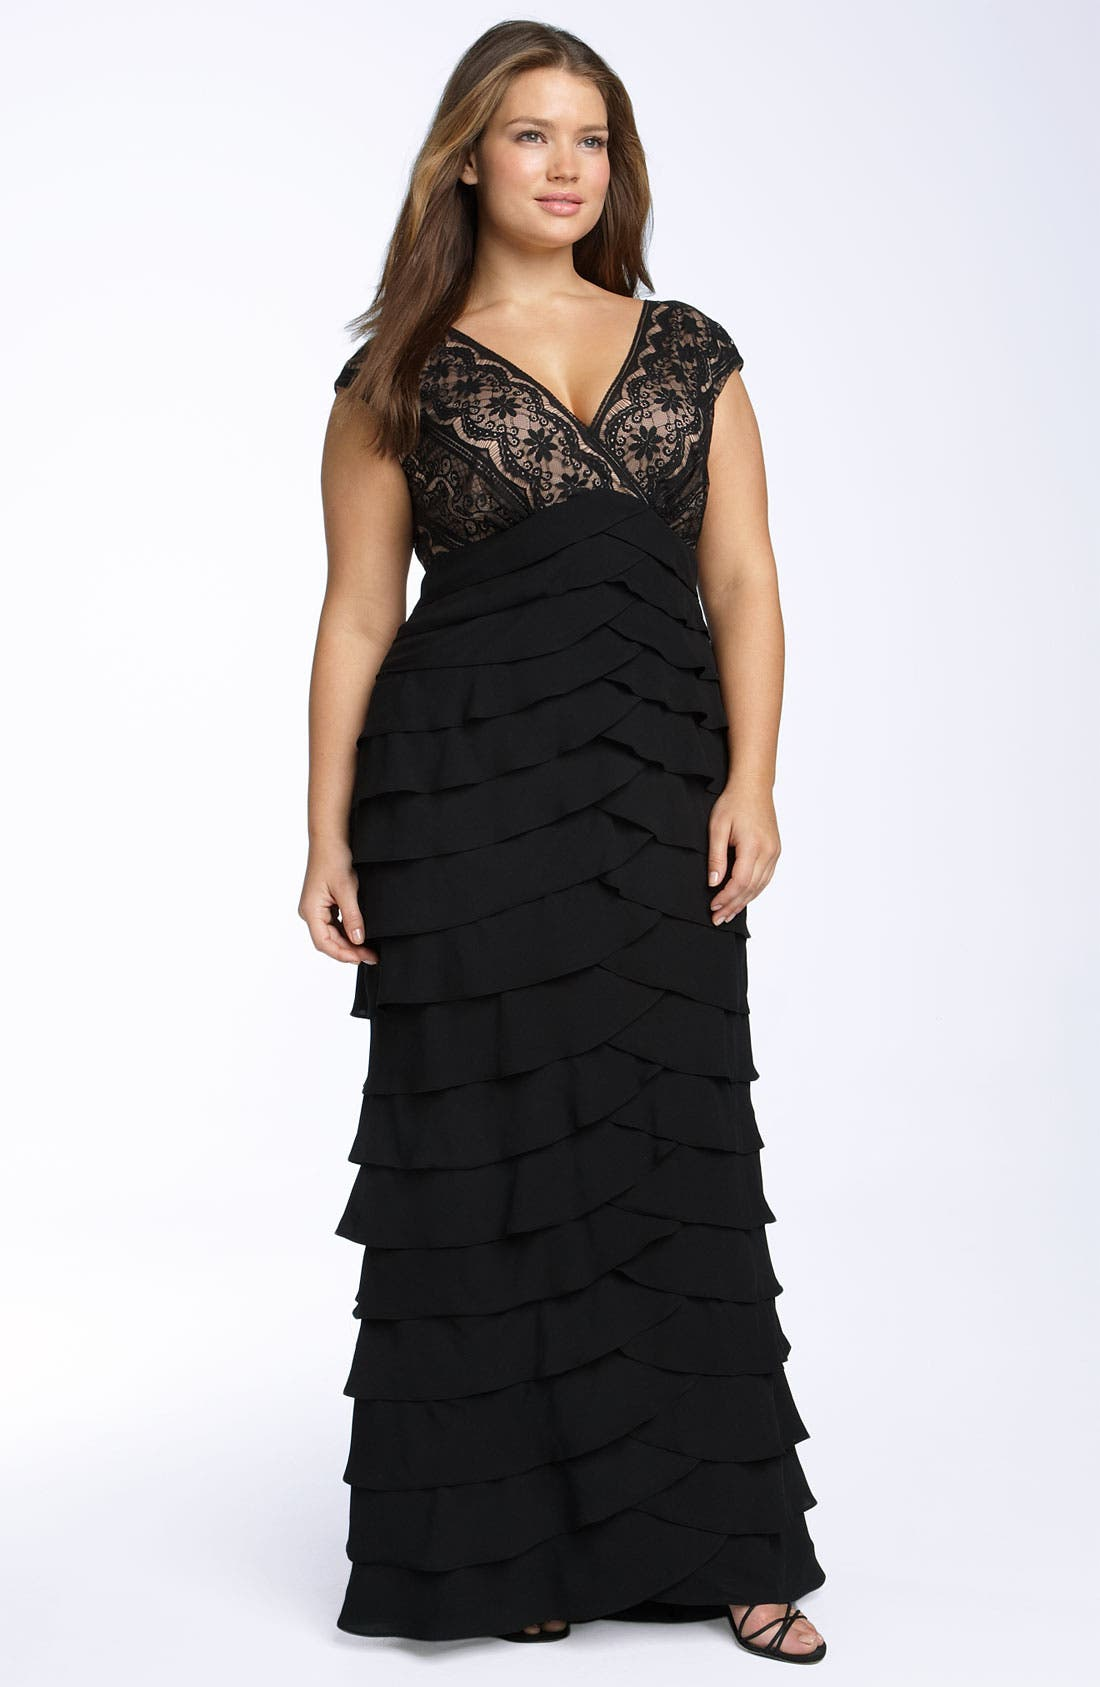 Plus size sleeved prom dresses